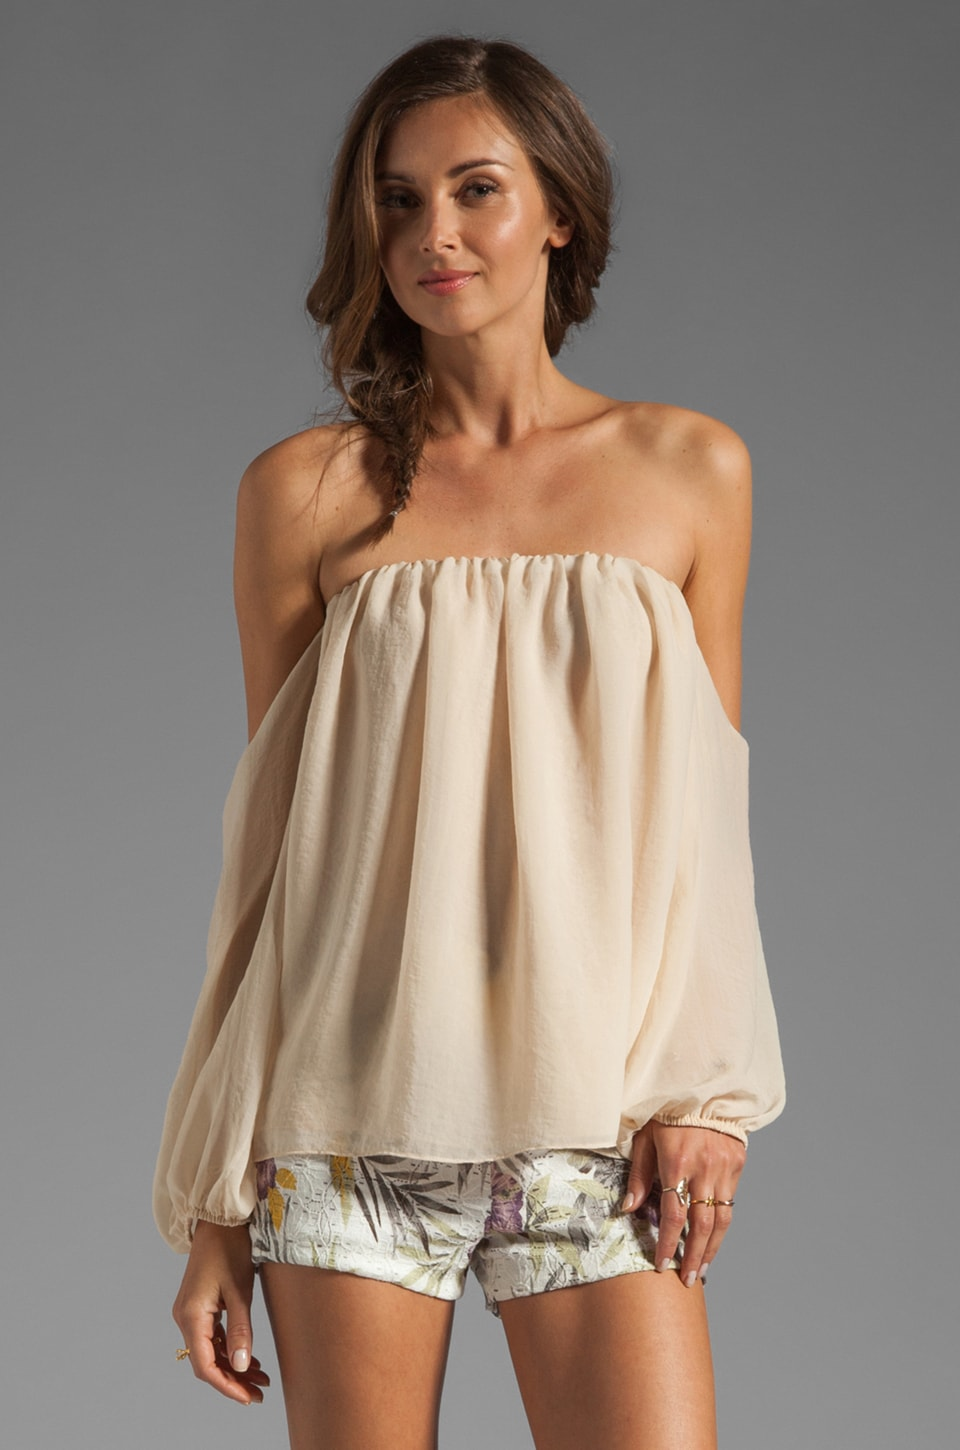 T-Bags LosAngeles Cut Out Sleeve Blouse in Beige